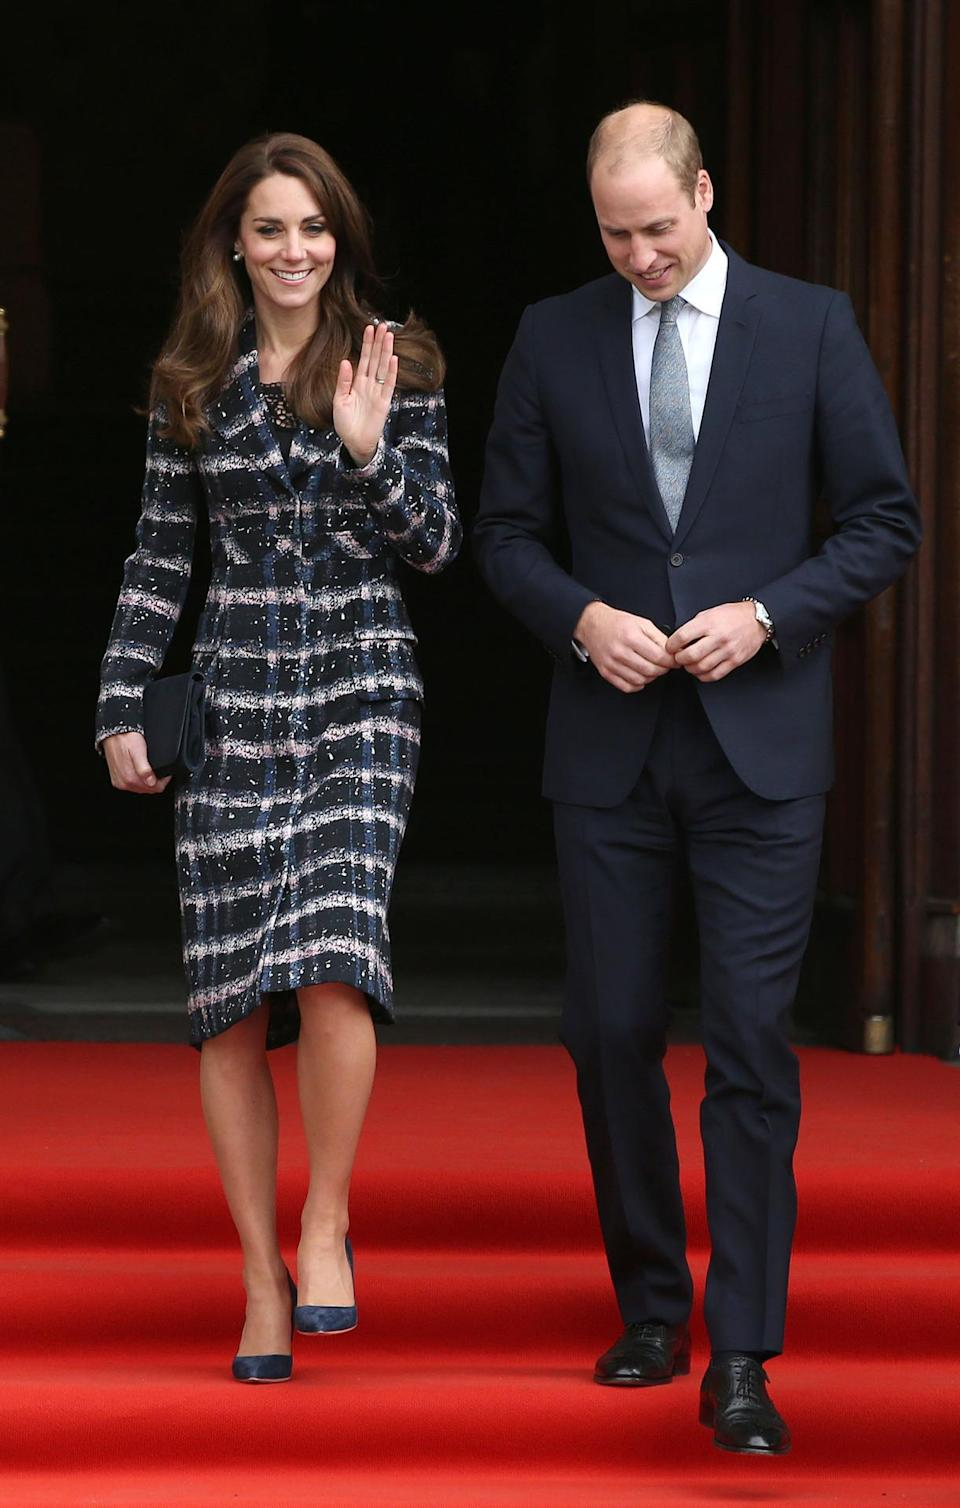 <p>For a day of engagements in Manchester with Prince William, the Duchess stayed warm in a new coat by British-based designer Erdem. </p><p><i>[Photo: PA Images]</i></p>